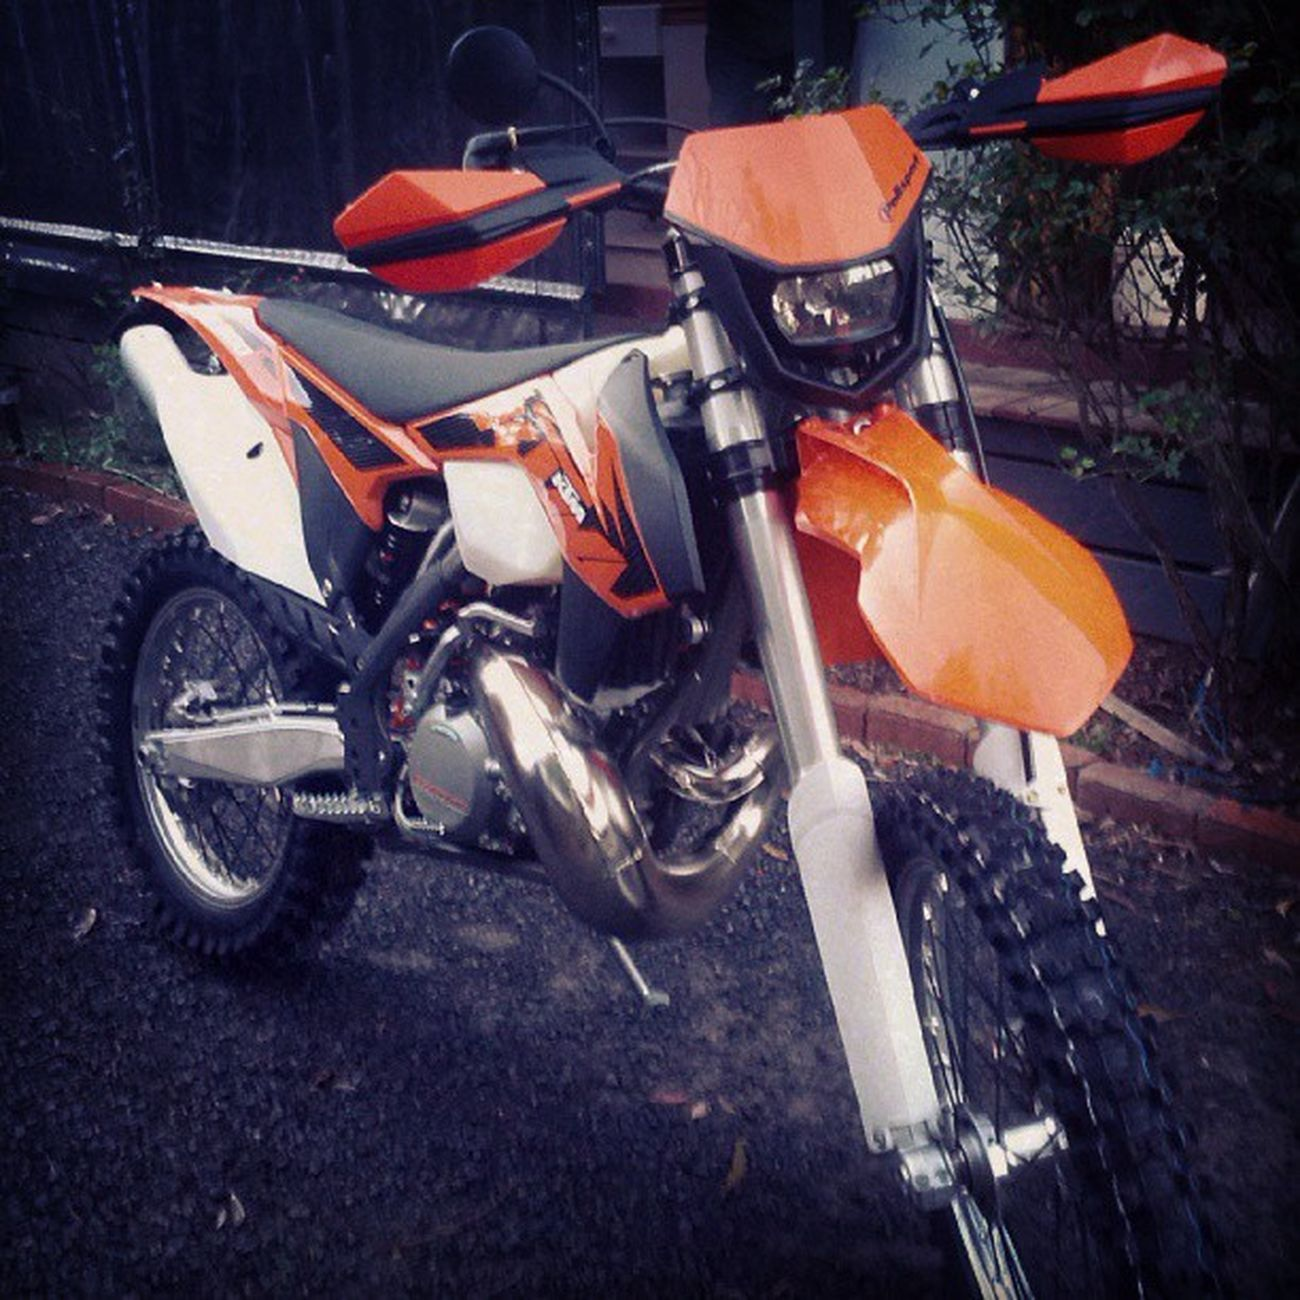 New weapon of choice Ktm300xc Yanktank Schmick Riding fun